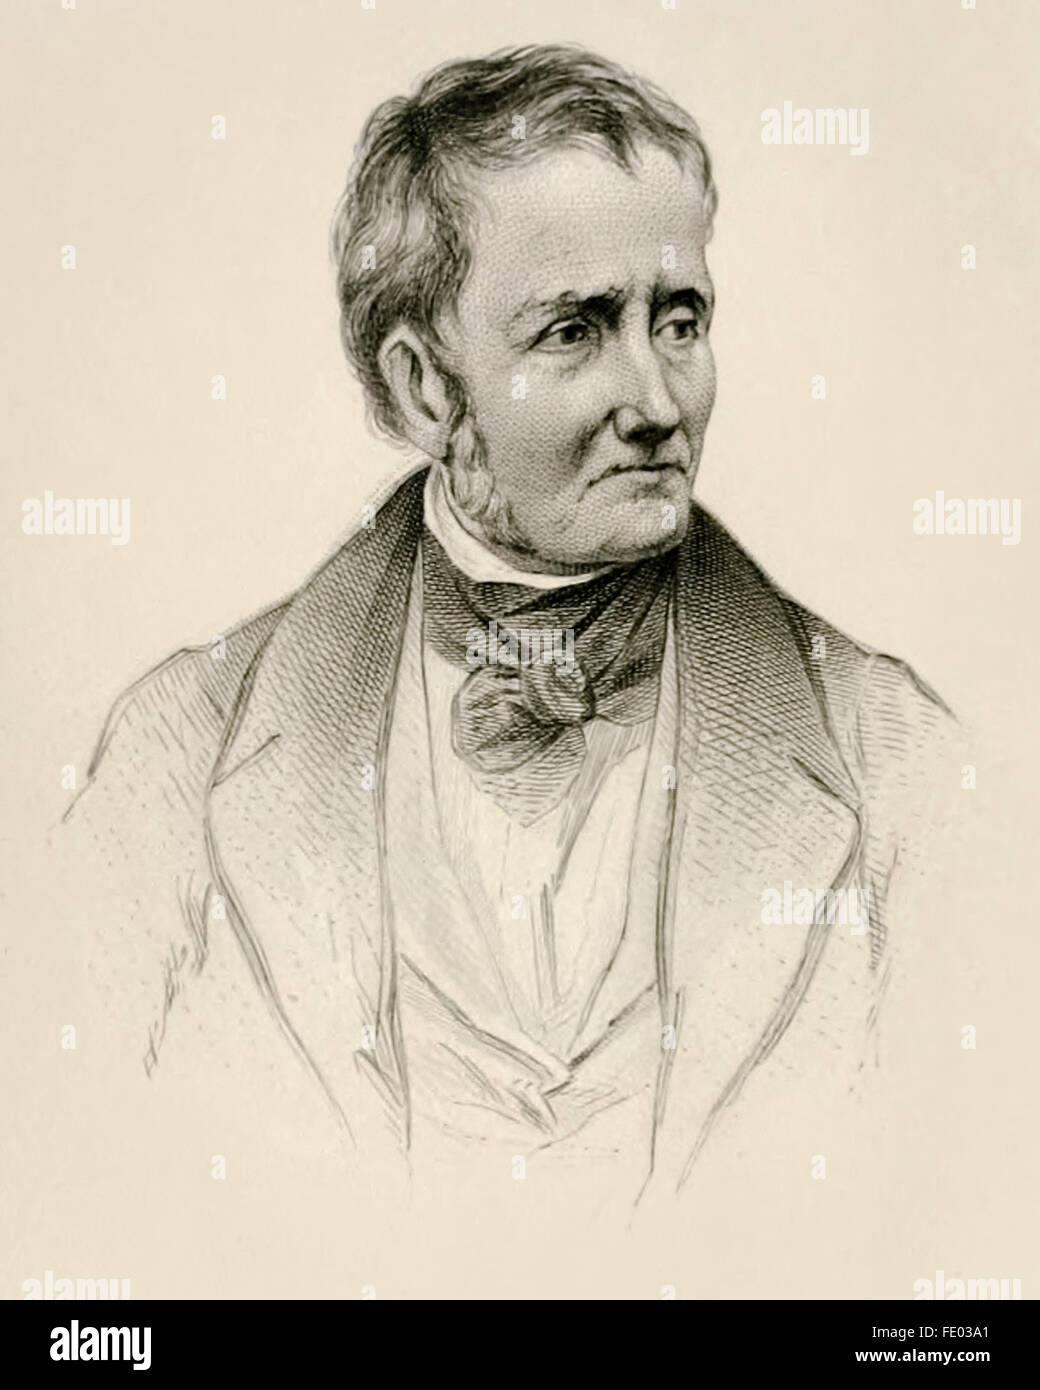 Engraving of Thomas De Quincey (1785-1859) author of 'Confessions of an English Opium-Eater' an autobiographical - Stock Image